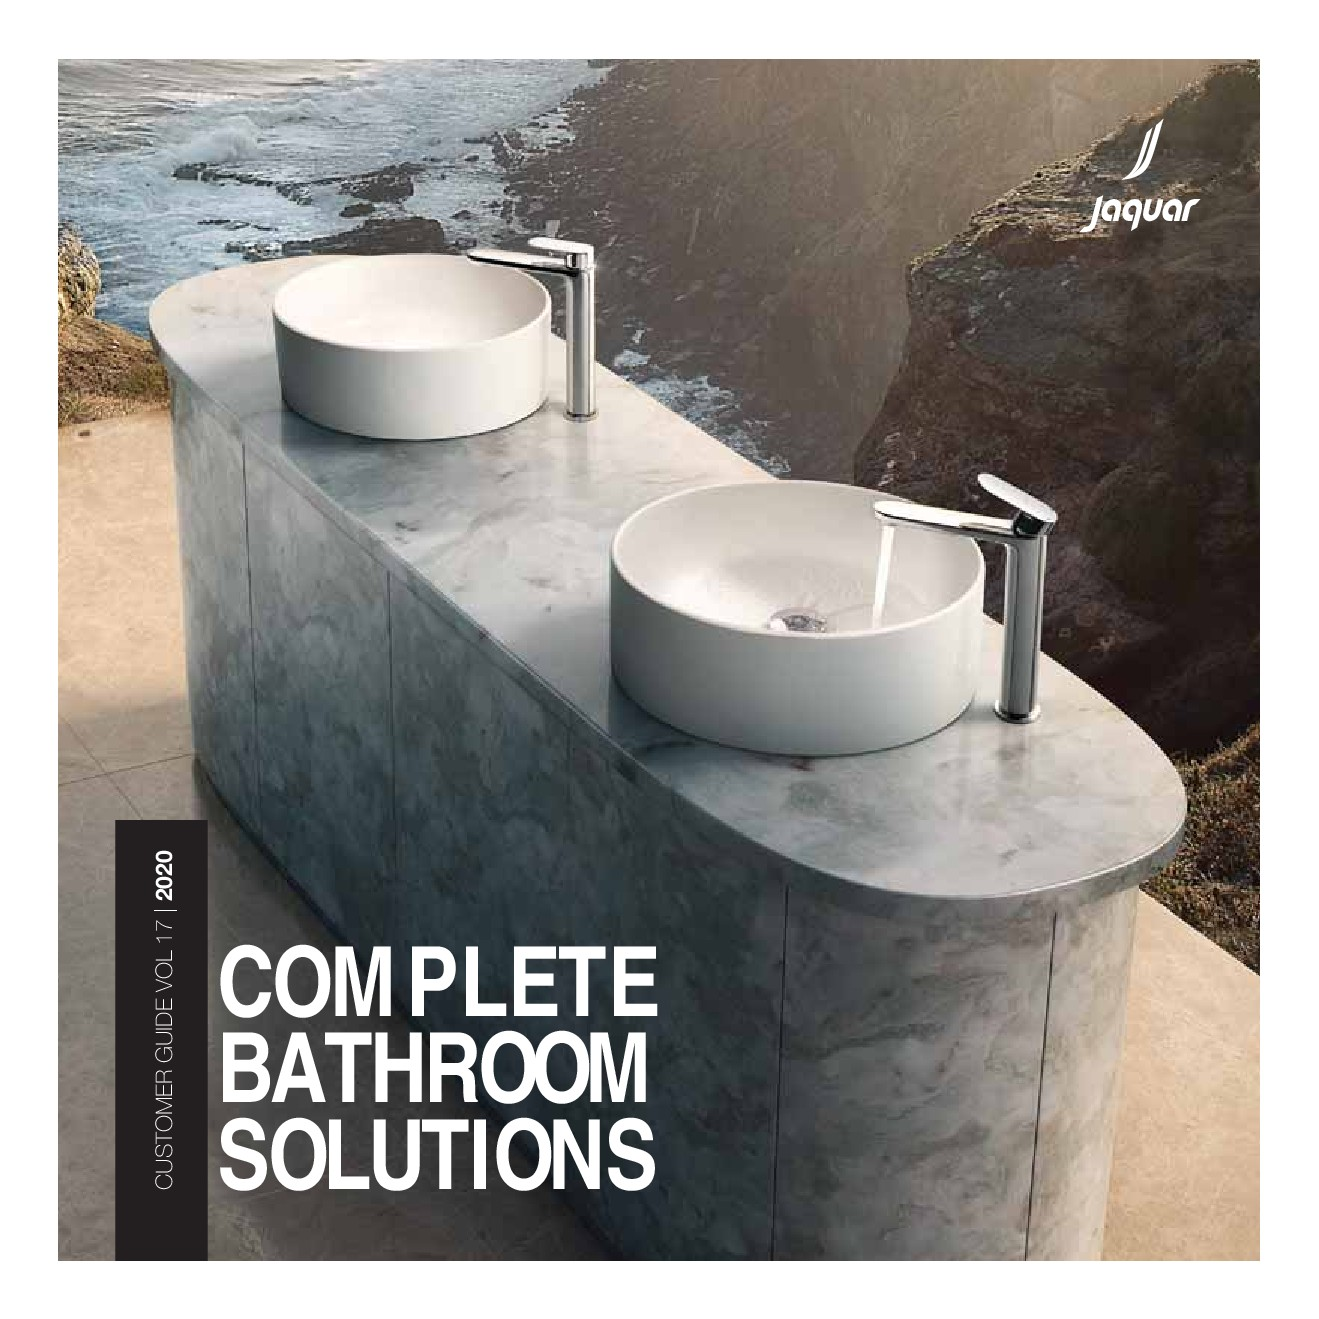 Jaquar Products Catalogue